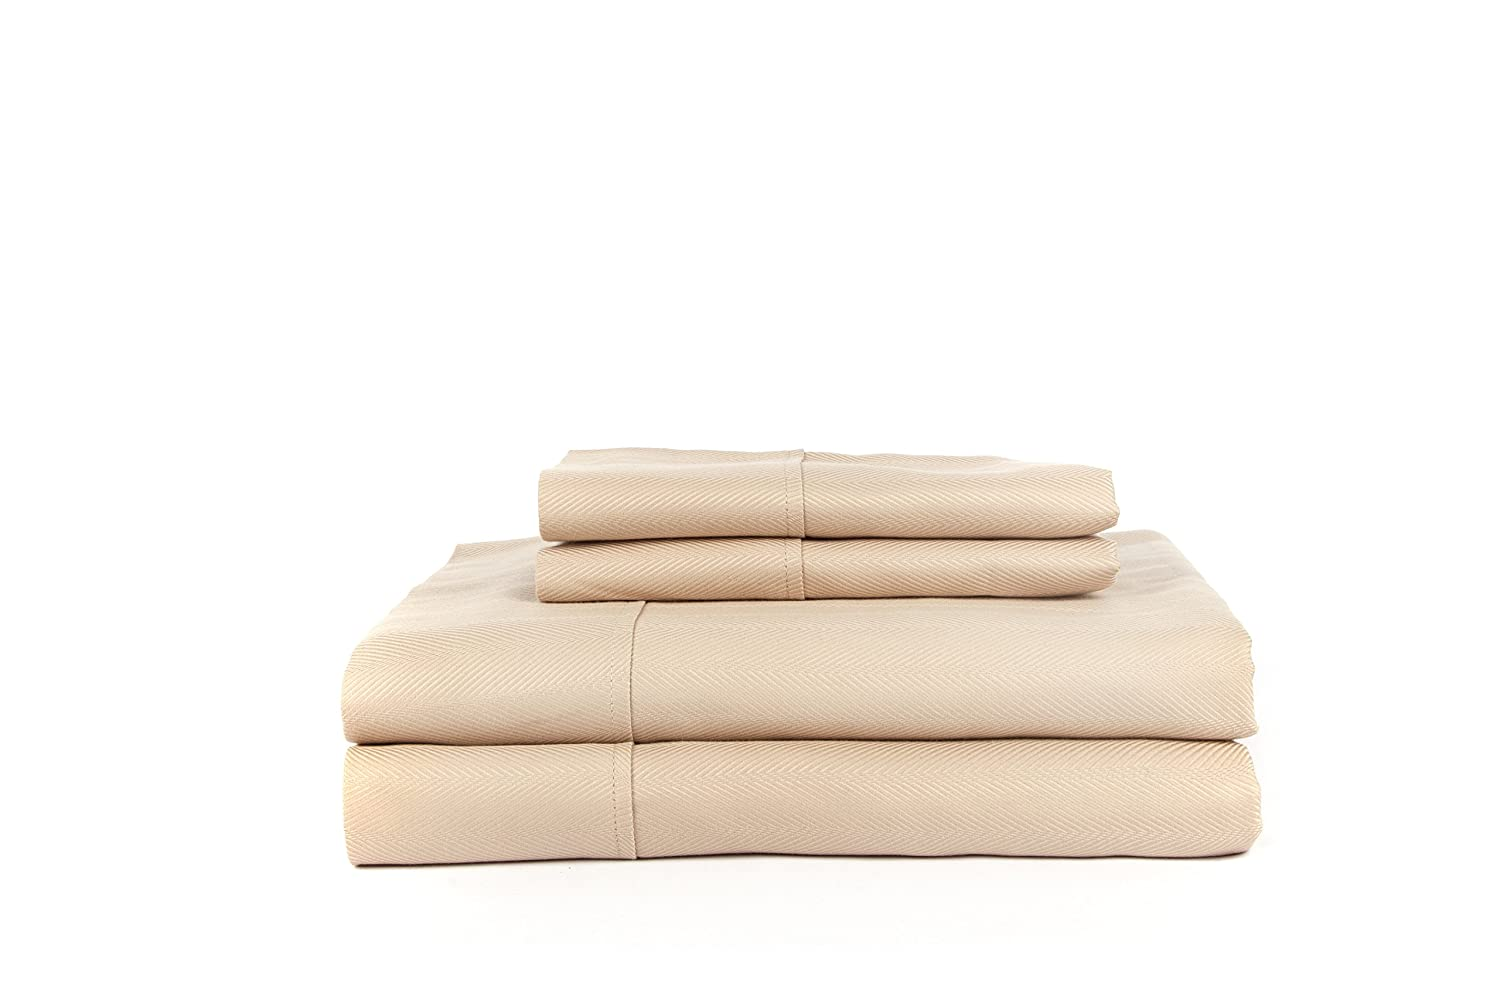 HN International Group Knightsbridge 600 Thread Count Cotton Set with Solid  Hem, Extra Soft-Breathable & Cool Sheets-Hypoallergenic, Queen, Taupe